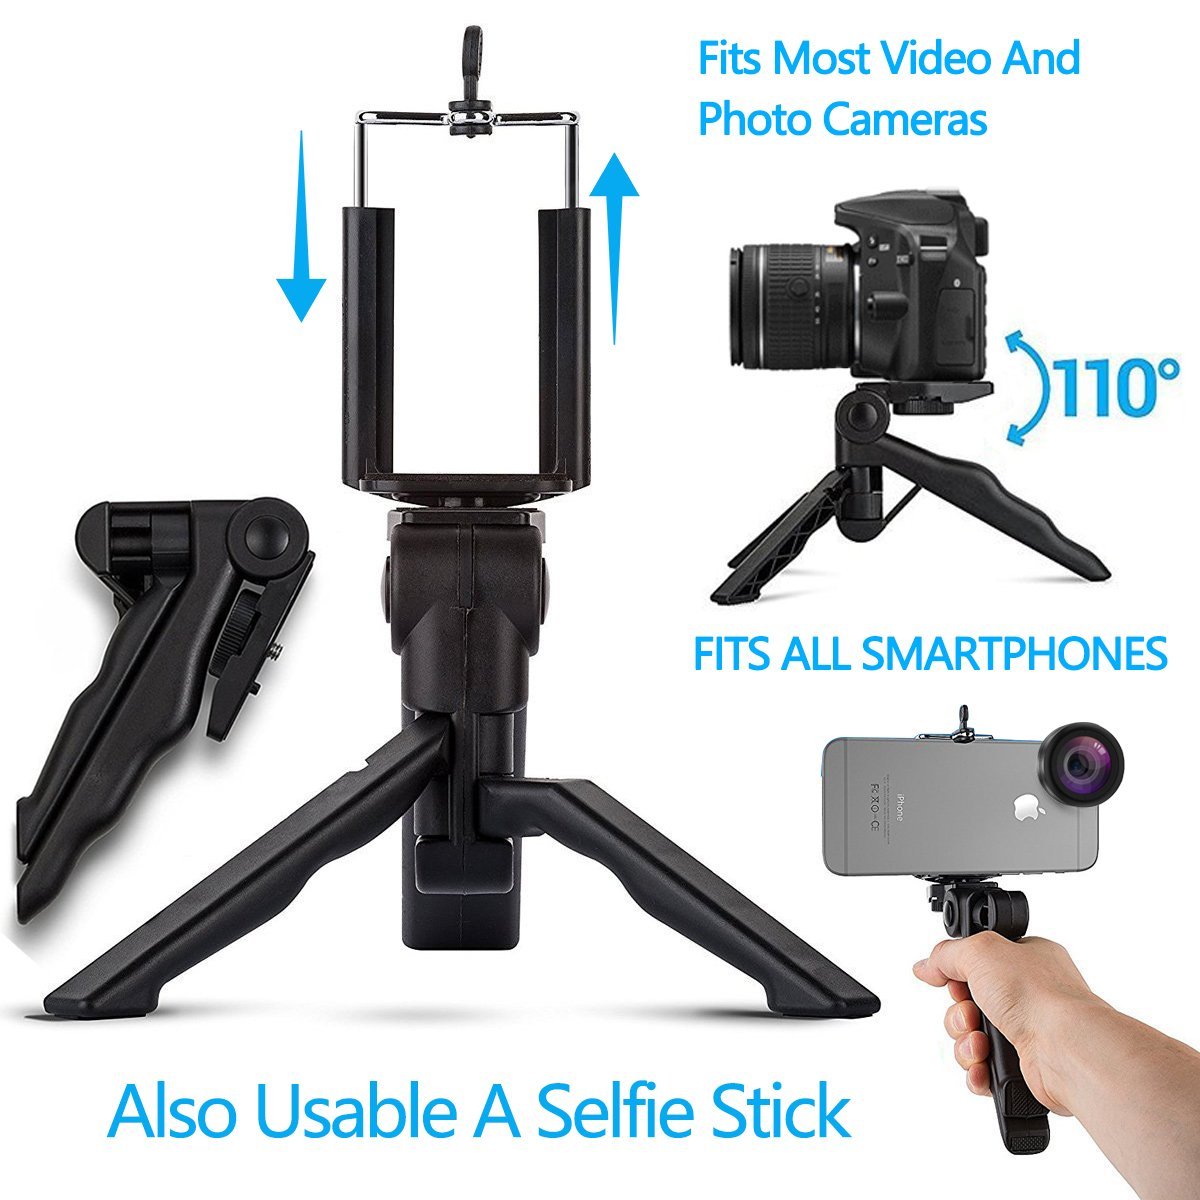 Cell Phone Camera Lens Kit by Ailuki with Professional Telephoto Lens,Wide Angle Lens+Macro Lens+Fisheye Lens, Selfie Remote Control+Tripod for iPhone Samsung Galaxy Most of Smartphone and iPad by AILUKI (Image #6)